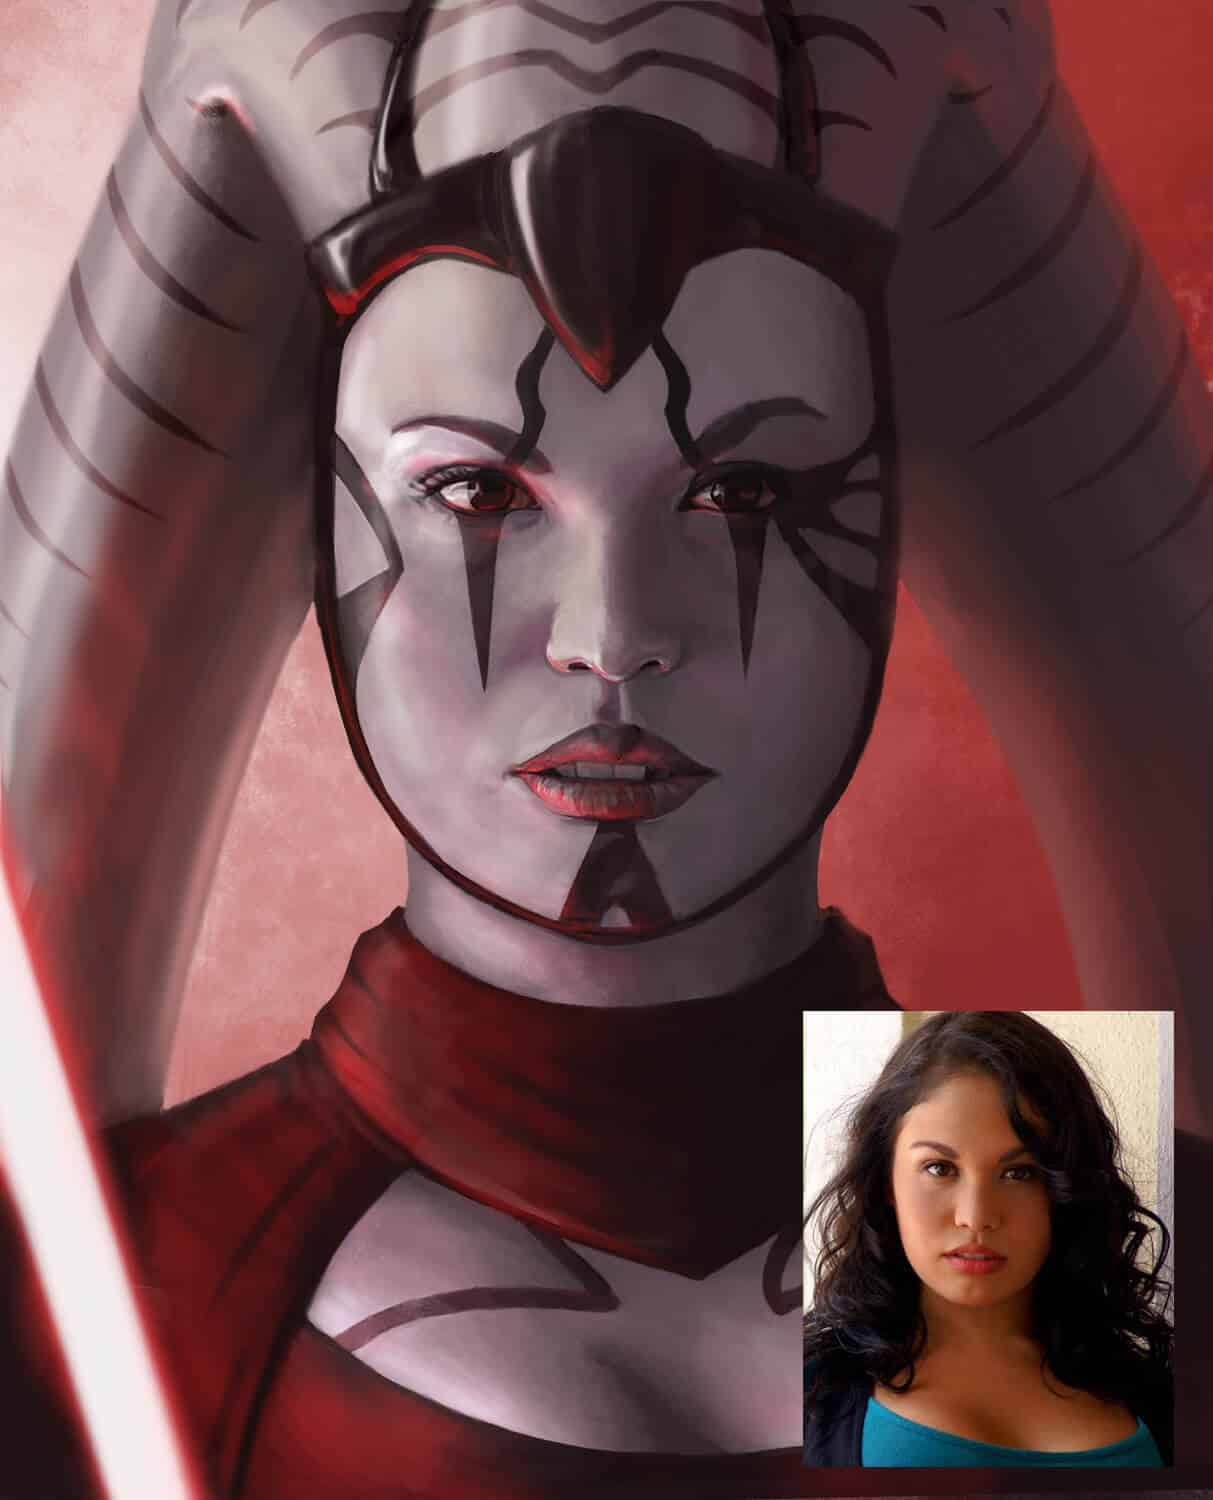 ArtCorgi - Human to fantasy portraits by Ian Brewer - Alice turned into a Sith from Star Wars